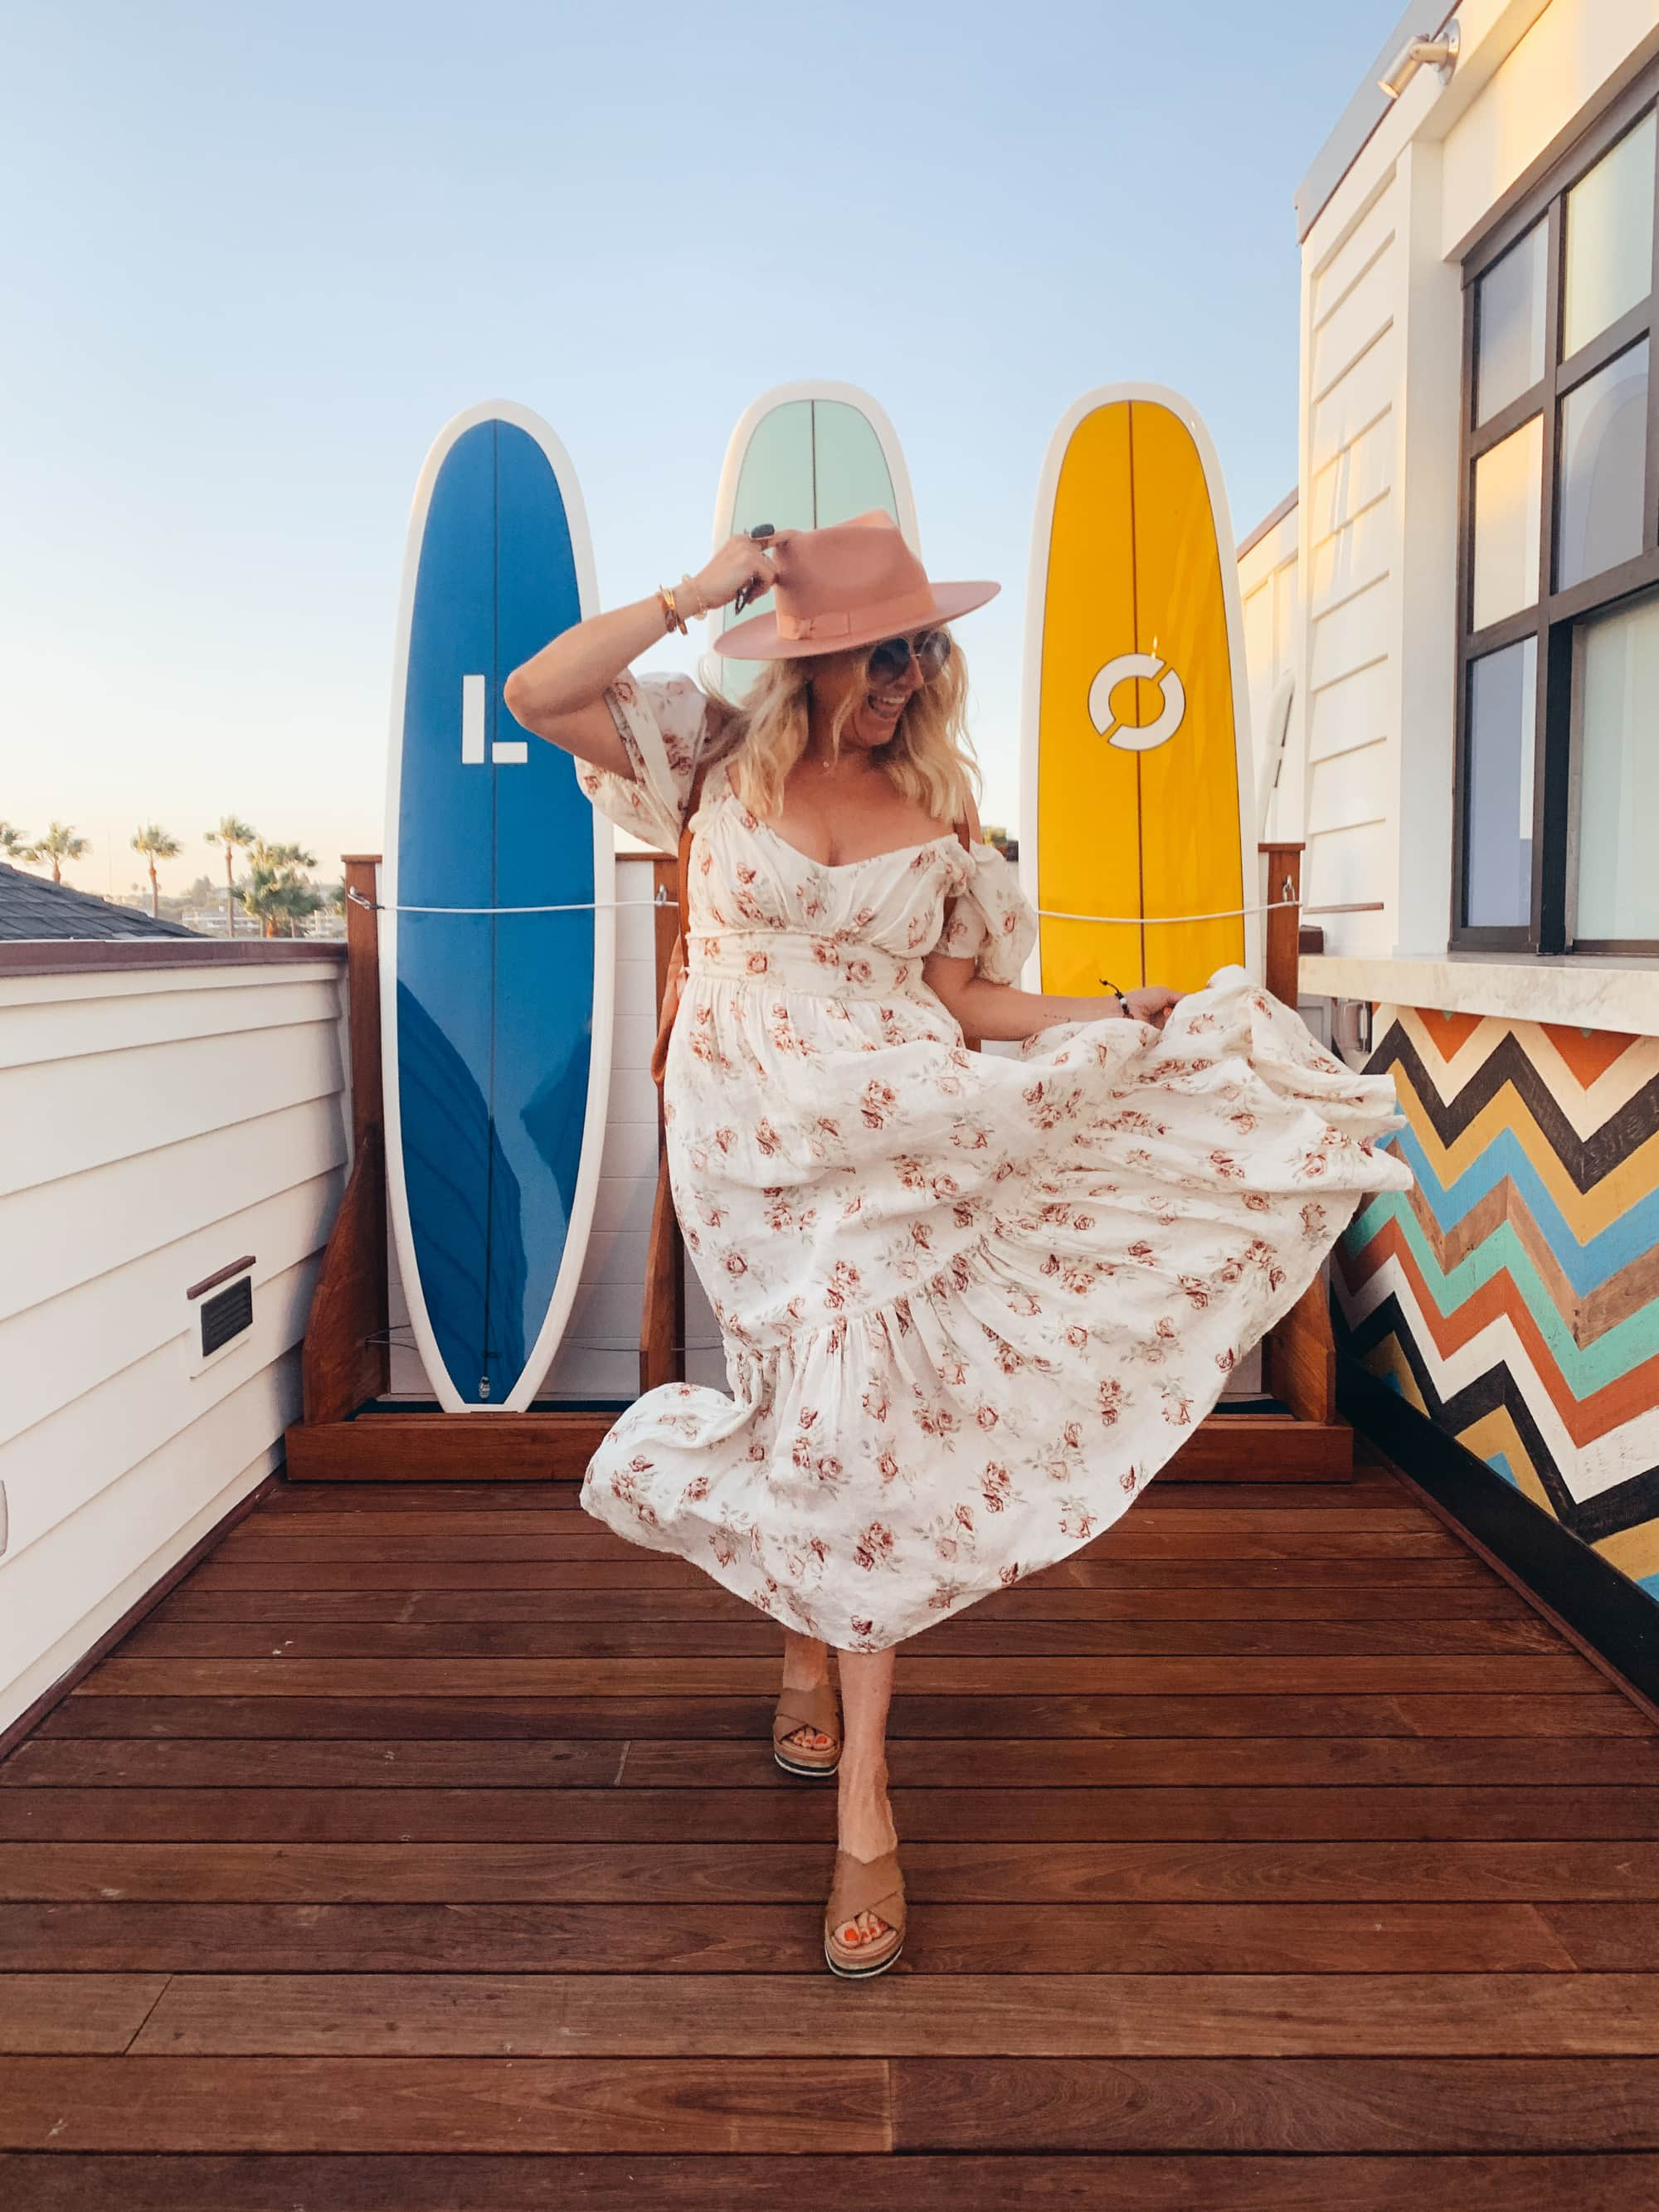 woman with surfboards